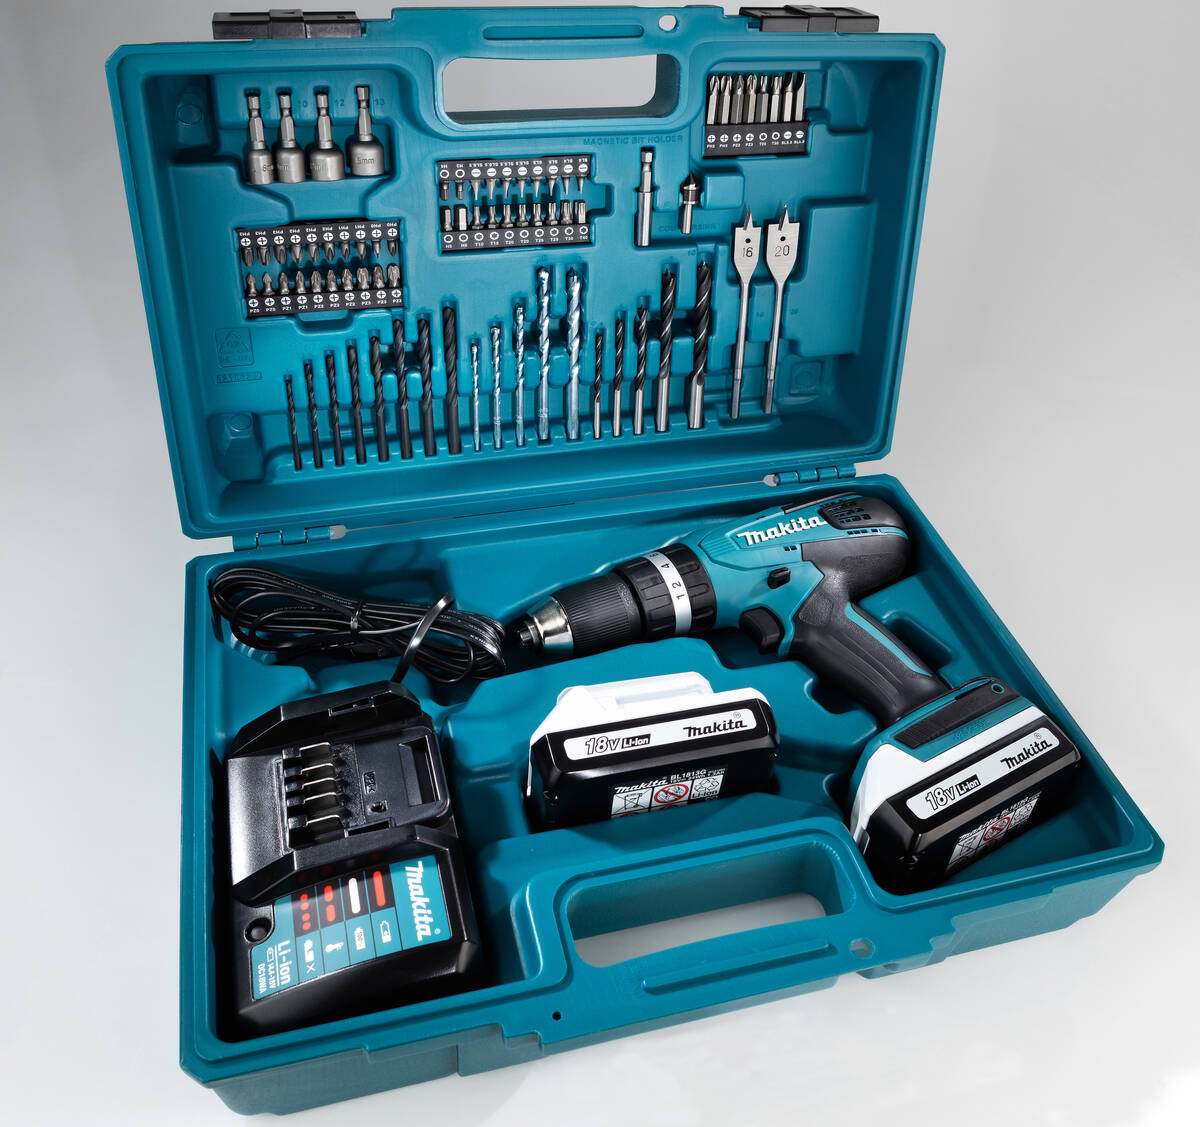 makita akku schlagbohrschrauber hp457dwe 18 volt tlg set im koffer ebay. Black Bedroom Furniture Sets. Home Design Ideas